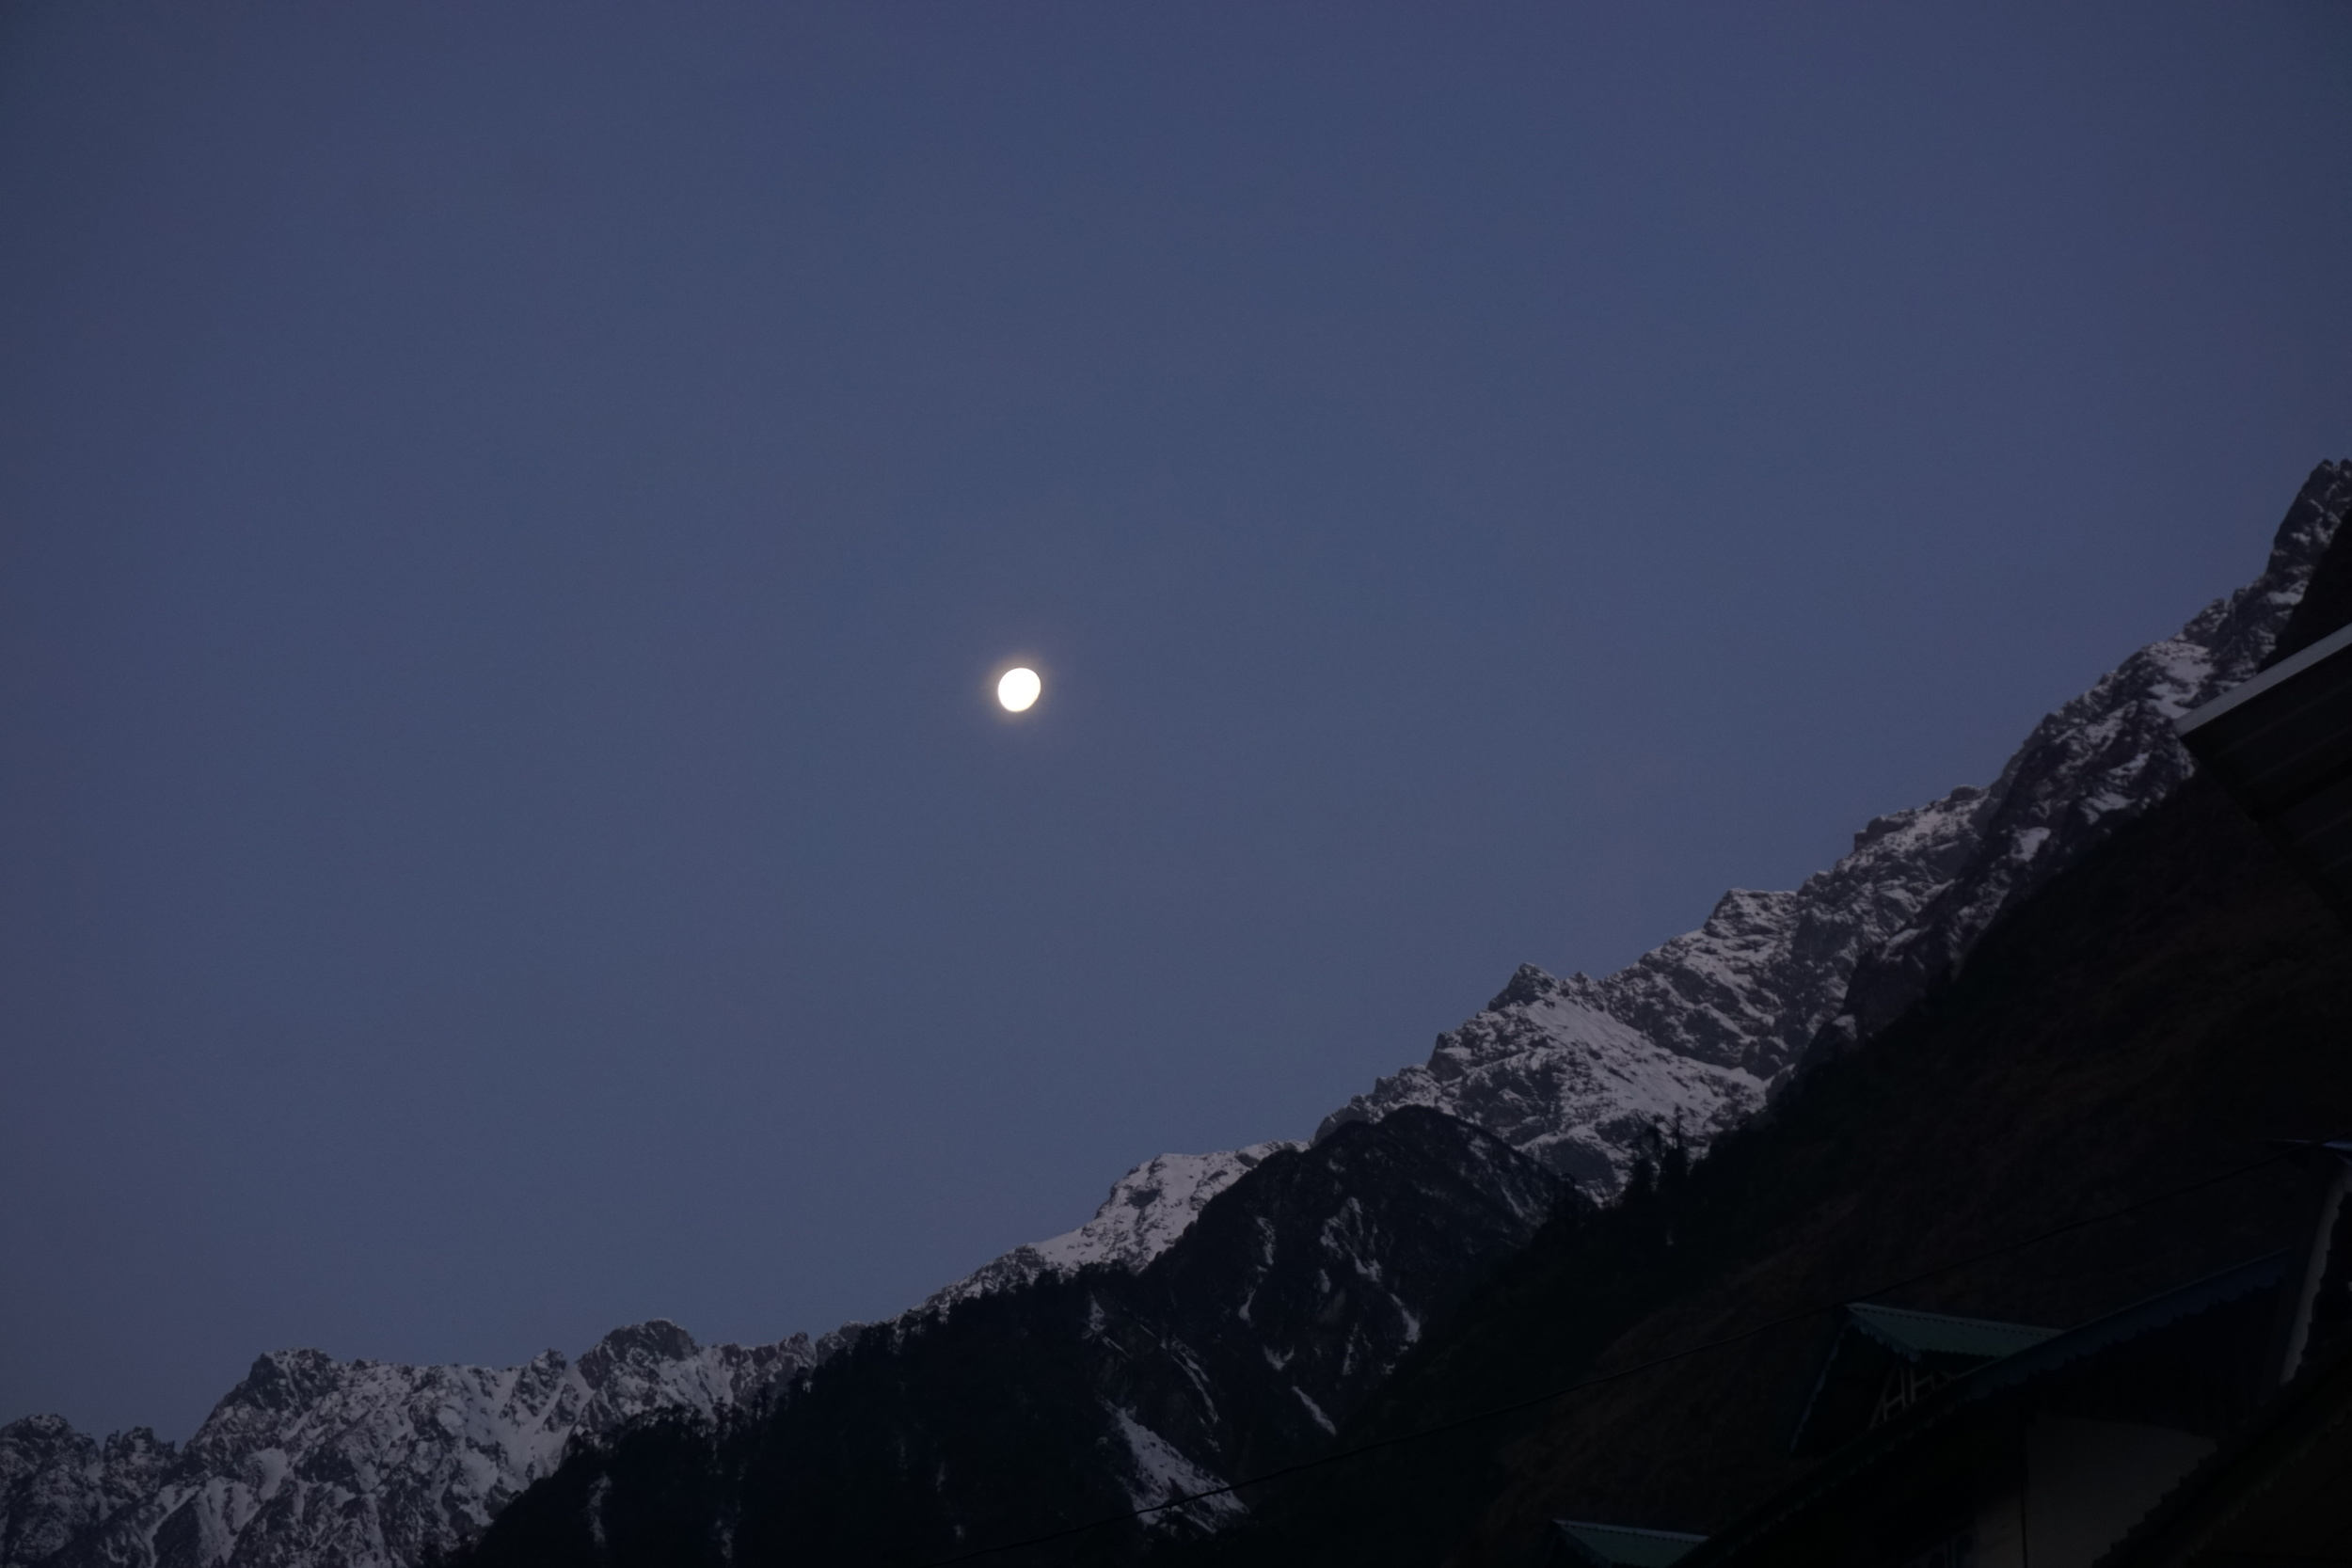 moon riding high in the himalayan sky. signs of clear beautiful skies - sikkim a solo travel destination in india